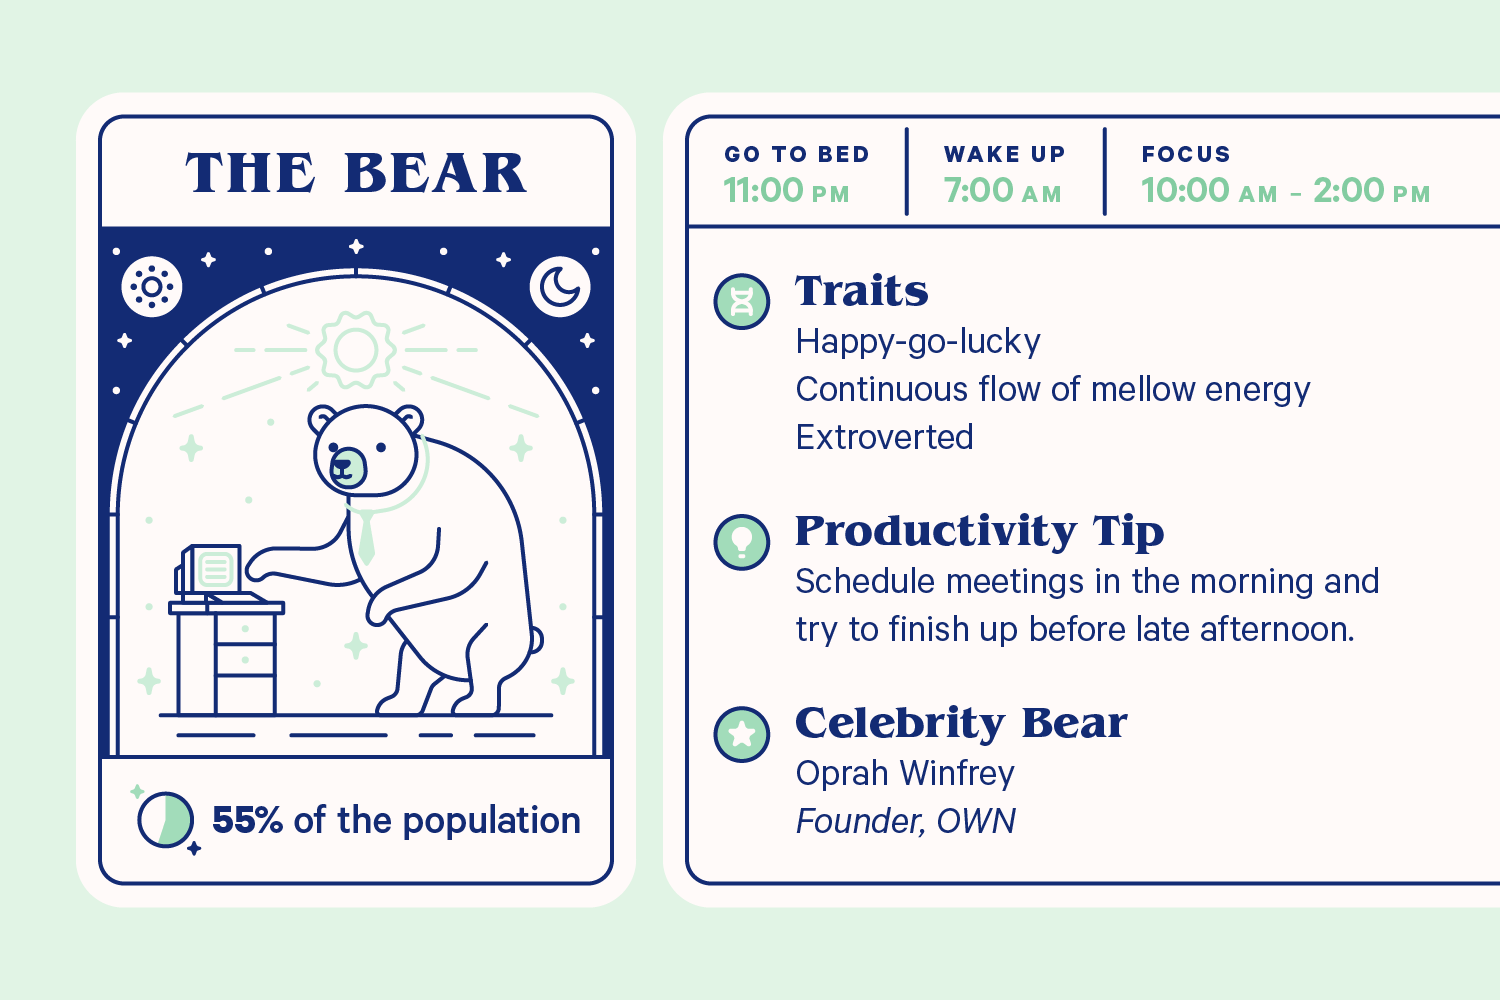 An infographic showing the following information about the bear: Goes to bed: 11:00 pm, wakes at 7:00 am, focus time is from 1-:-- am to 2:00 pm. Traits: happy-go-lucky, continuous flow of mellow energy, extroverted. Productivity tip: Schedule meetings in the morning and try to finish up before  late afternoon. Celebrity Bear: Oprah Winfrey, Founder of OWN.